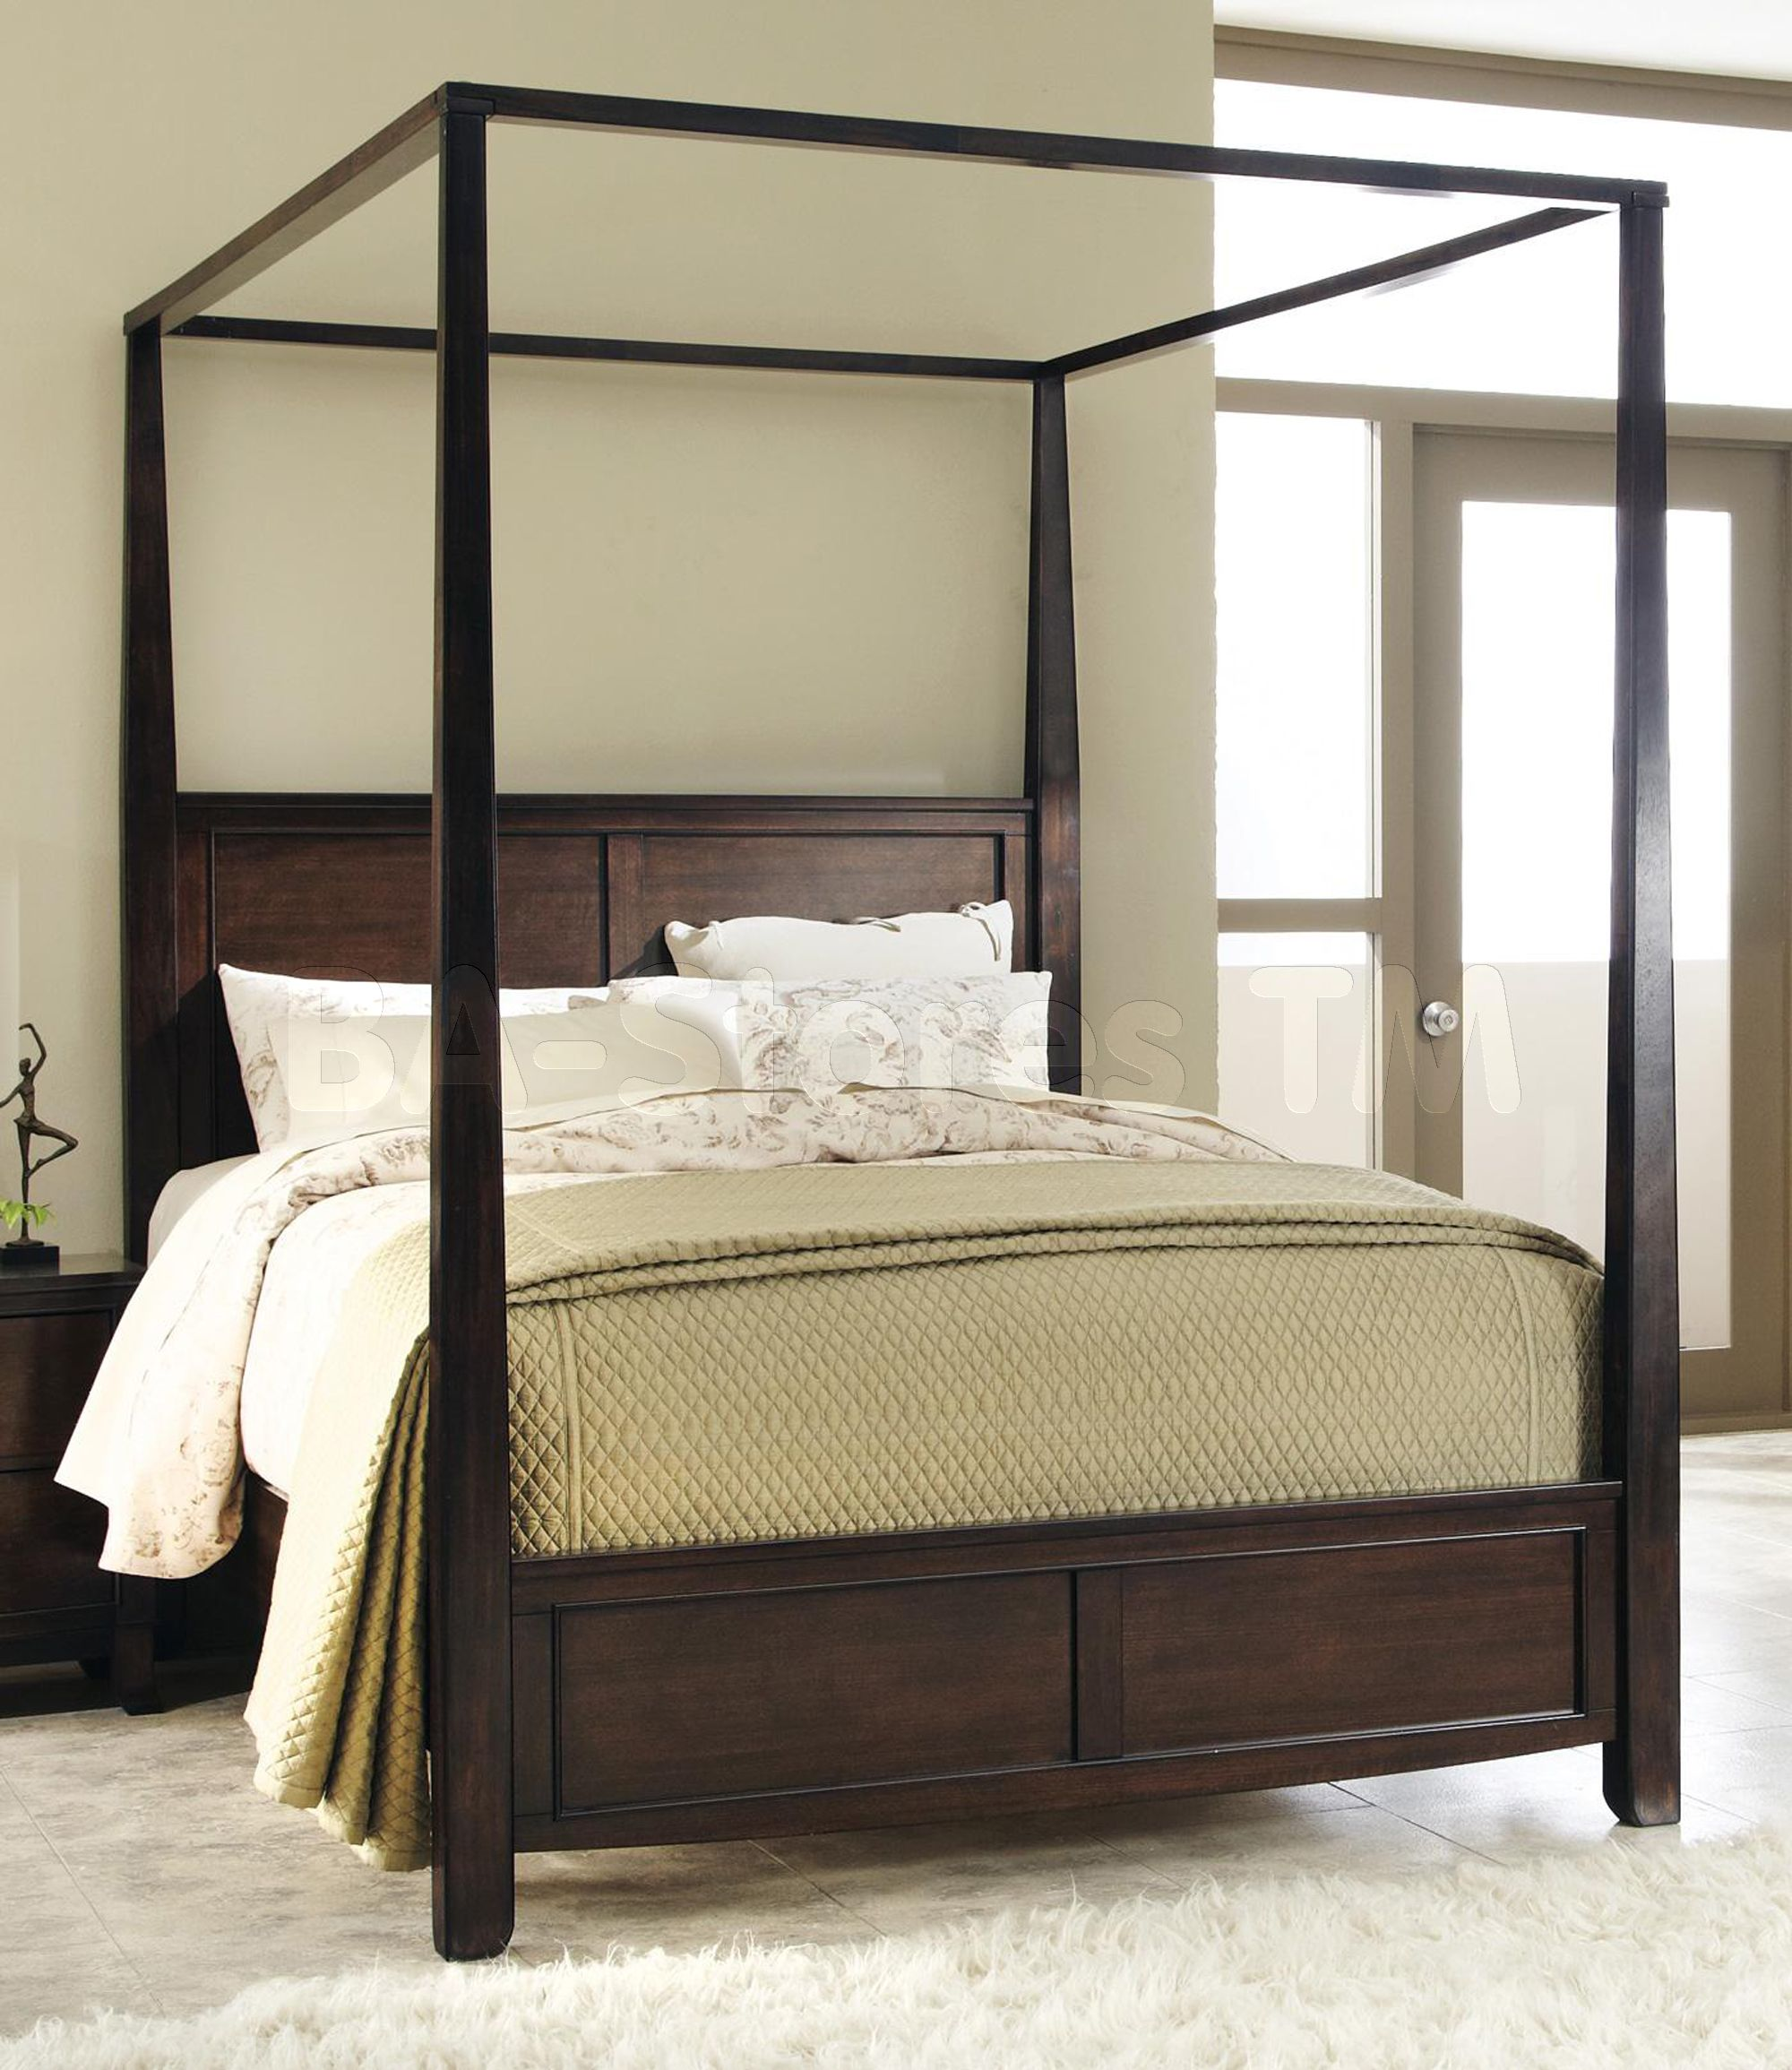 Beds Dramatic Canopy Bed COA202931/3 Canopy bedroom